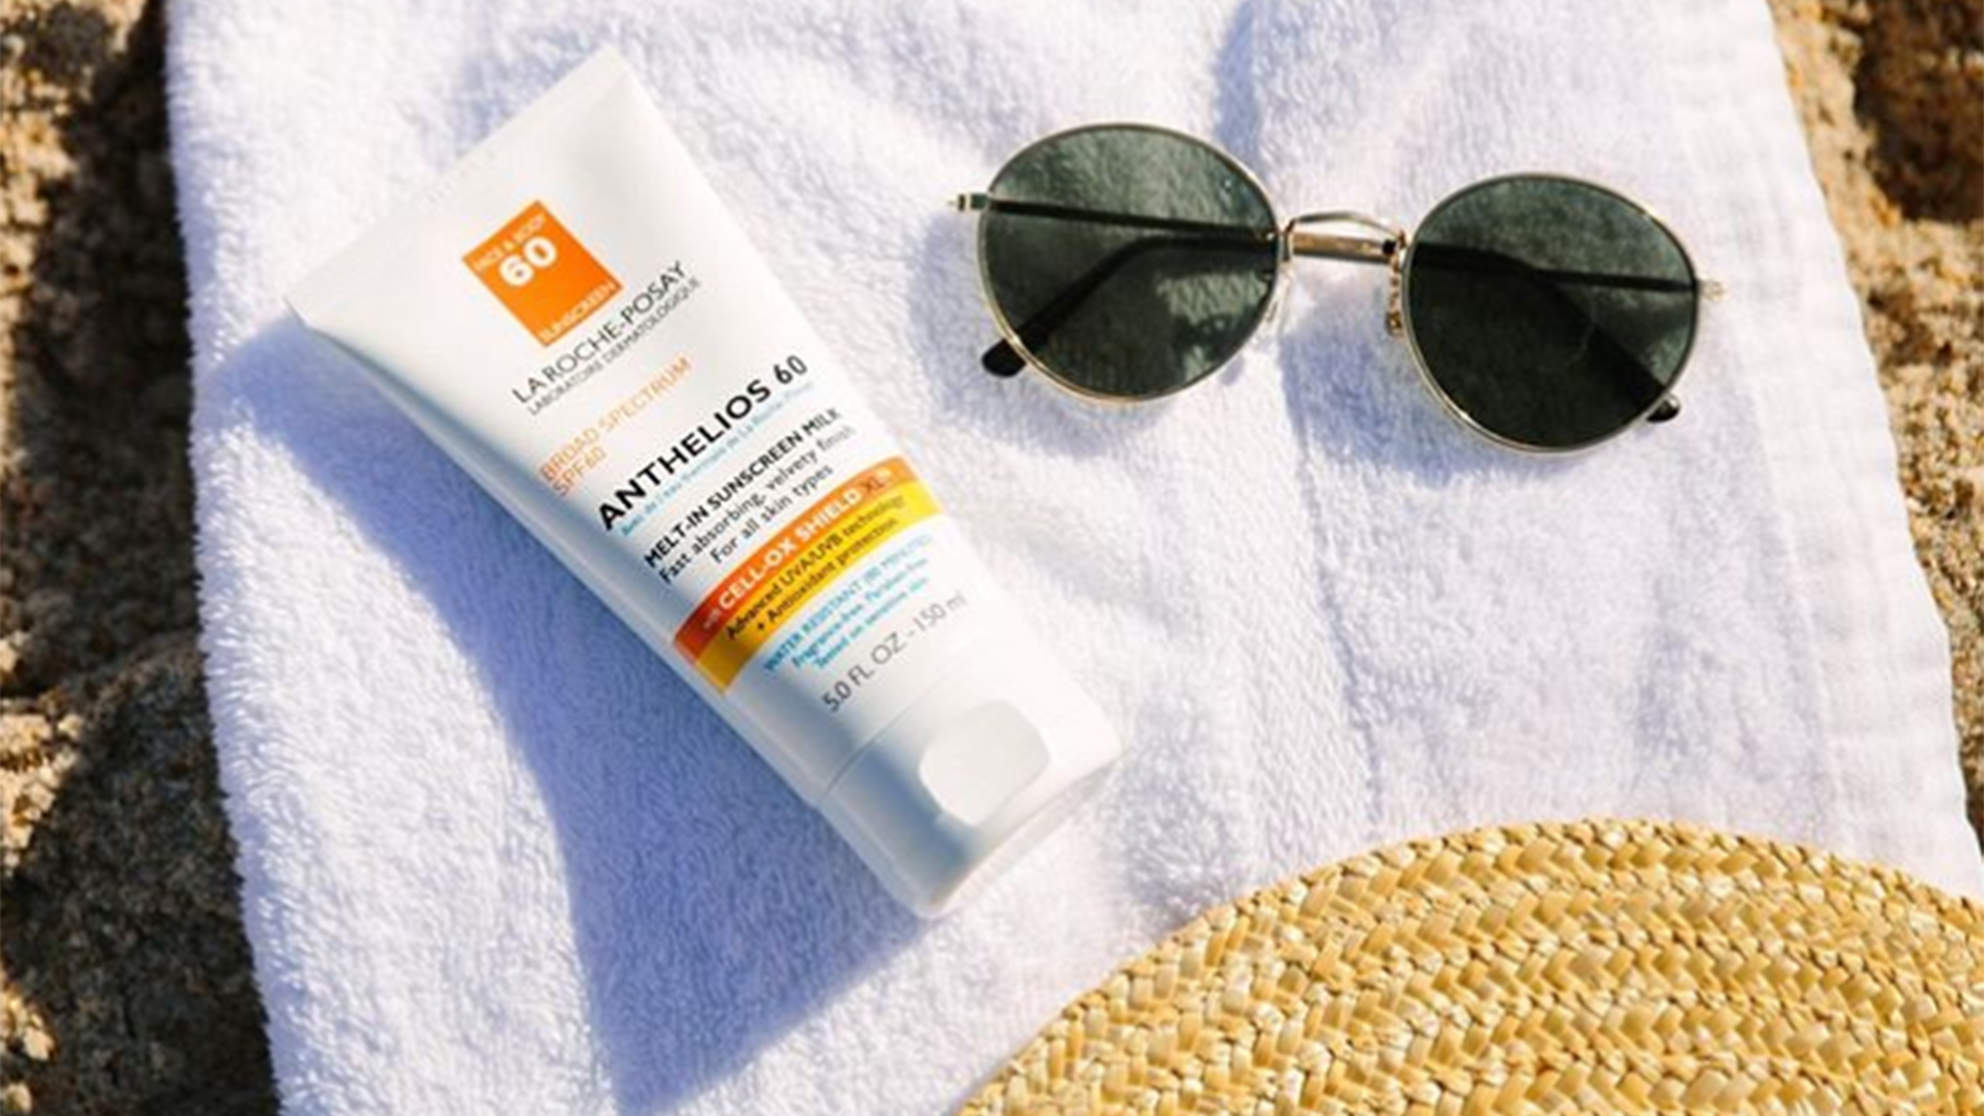 This Sunscreen Just Earned a Perfect Score from Consumer Reports for the Fifth Time—and It's on Amazon